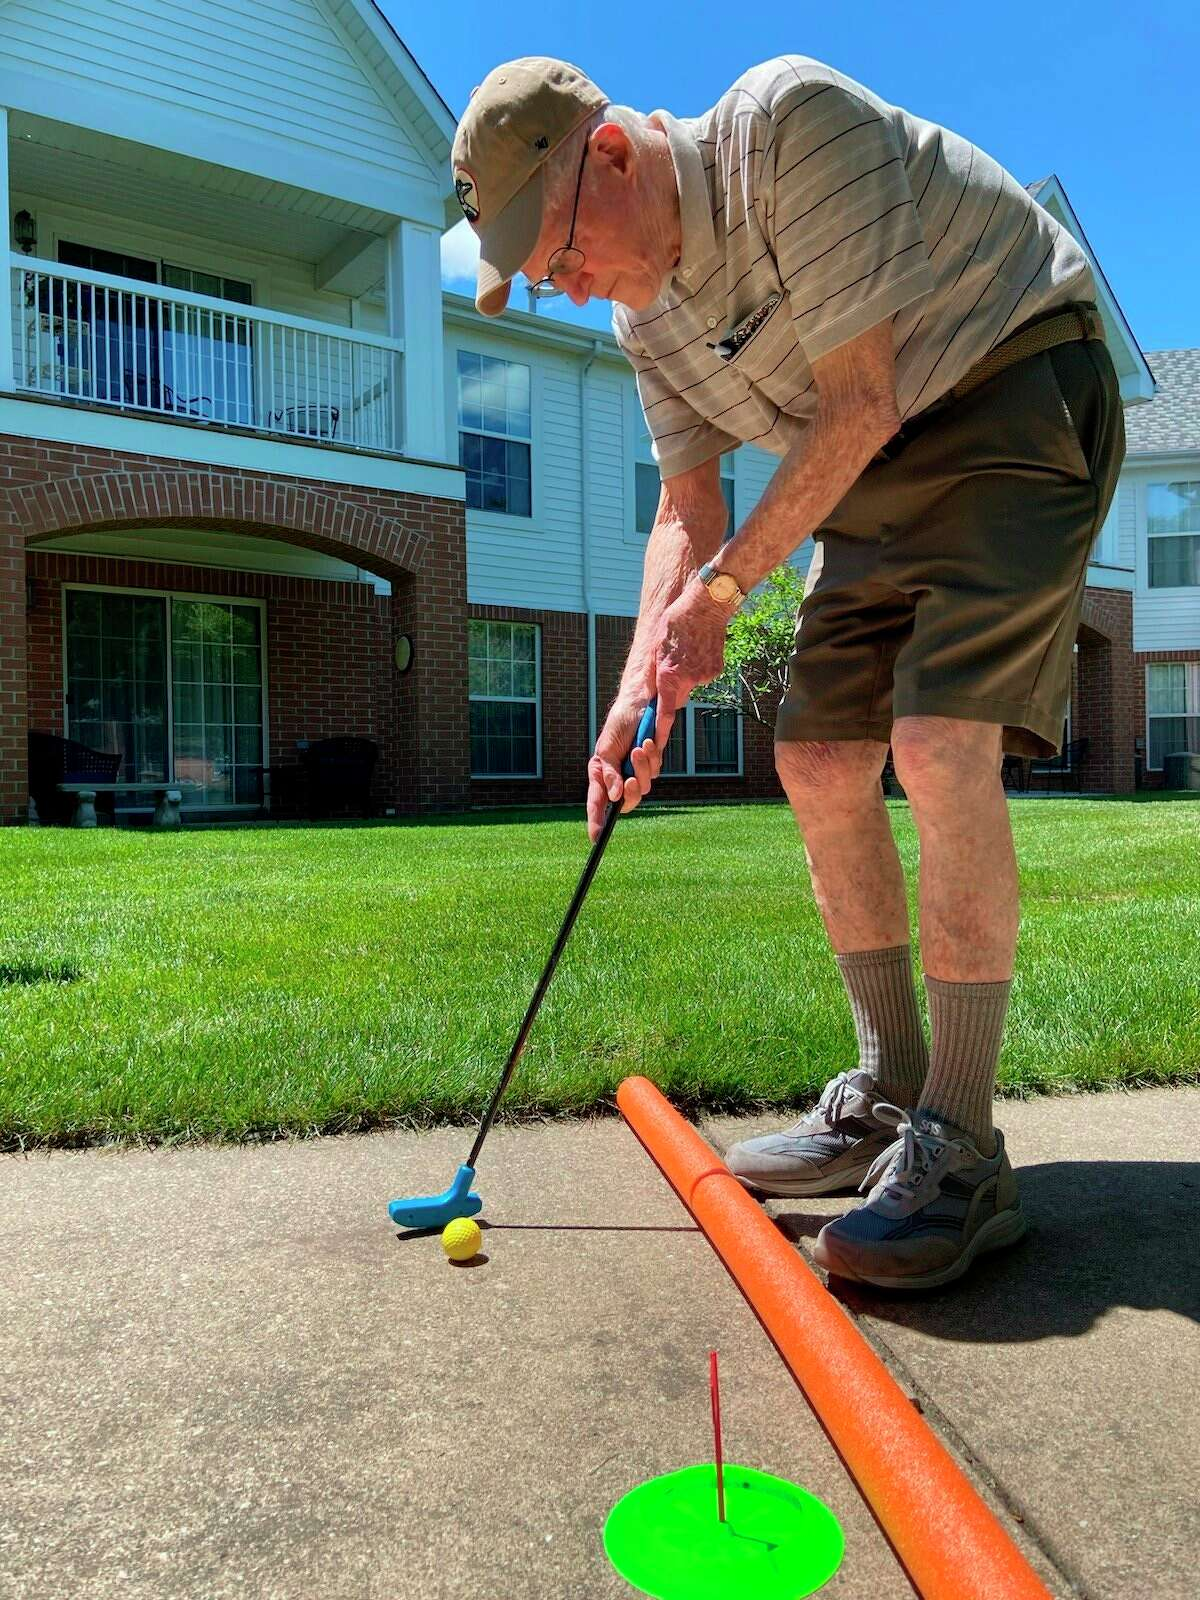 Independence Village of Midland residents enjoyed playing putt-putt indoors and outside on June 16. (Photo provided/Independence Village)